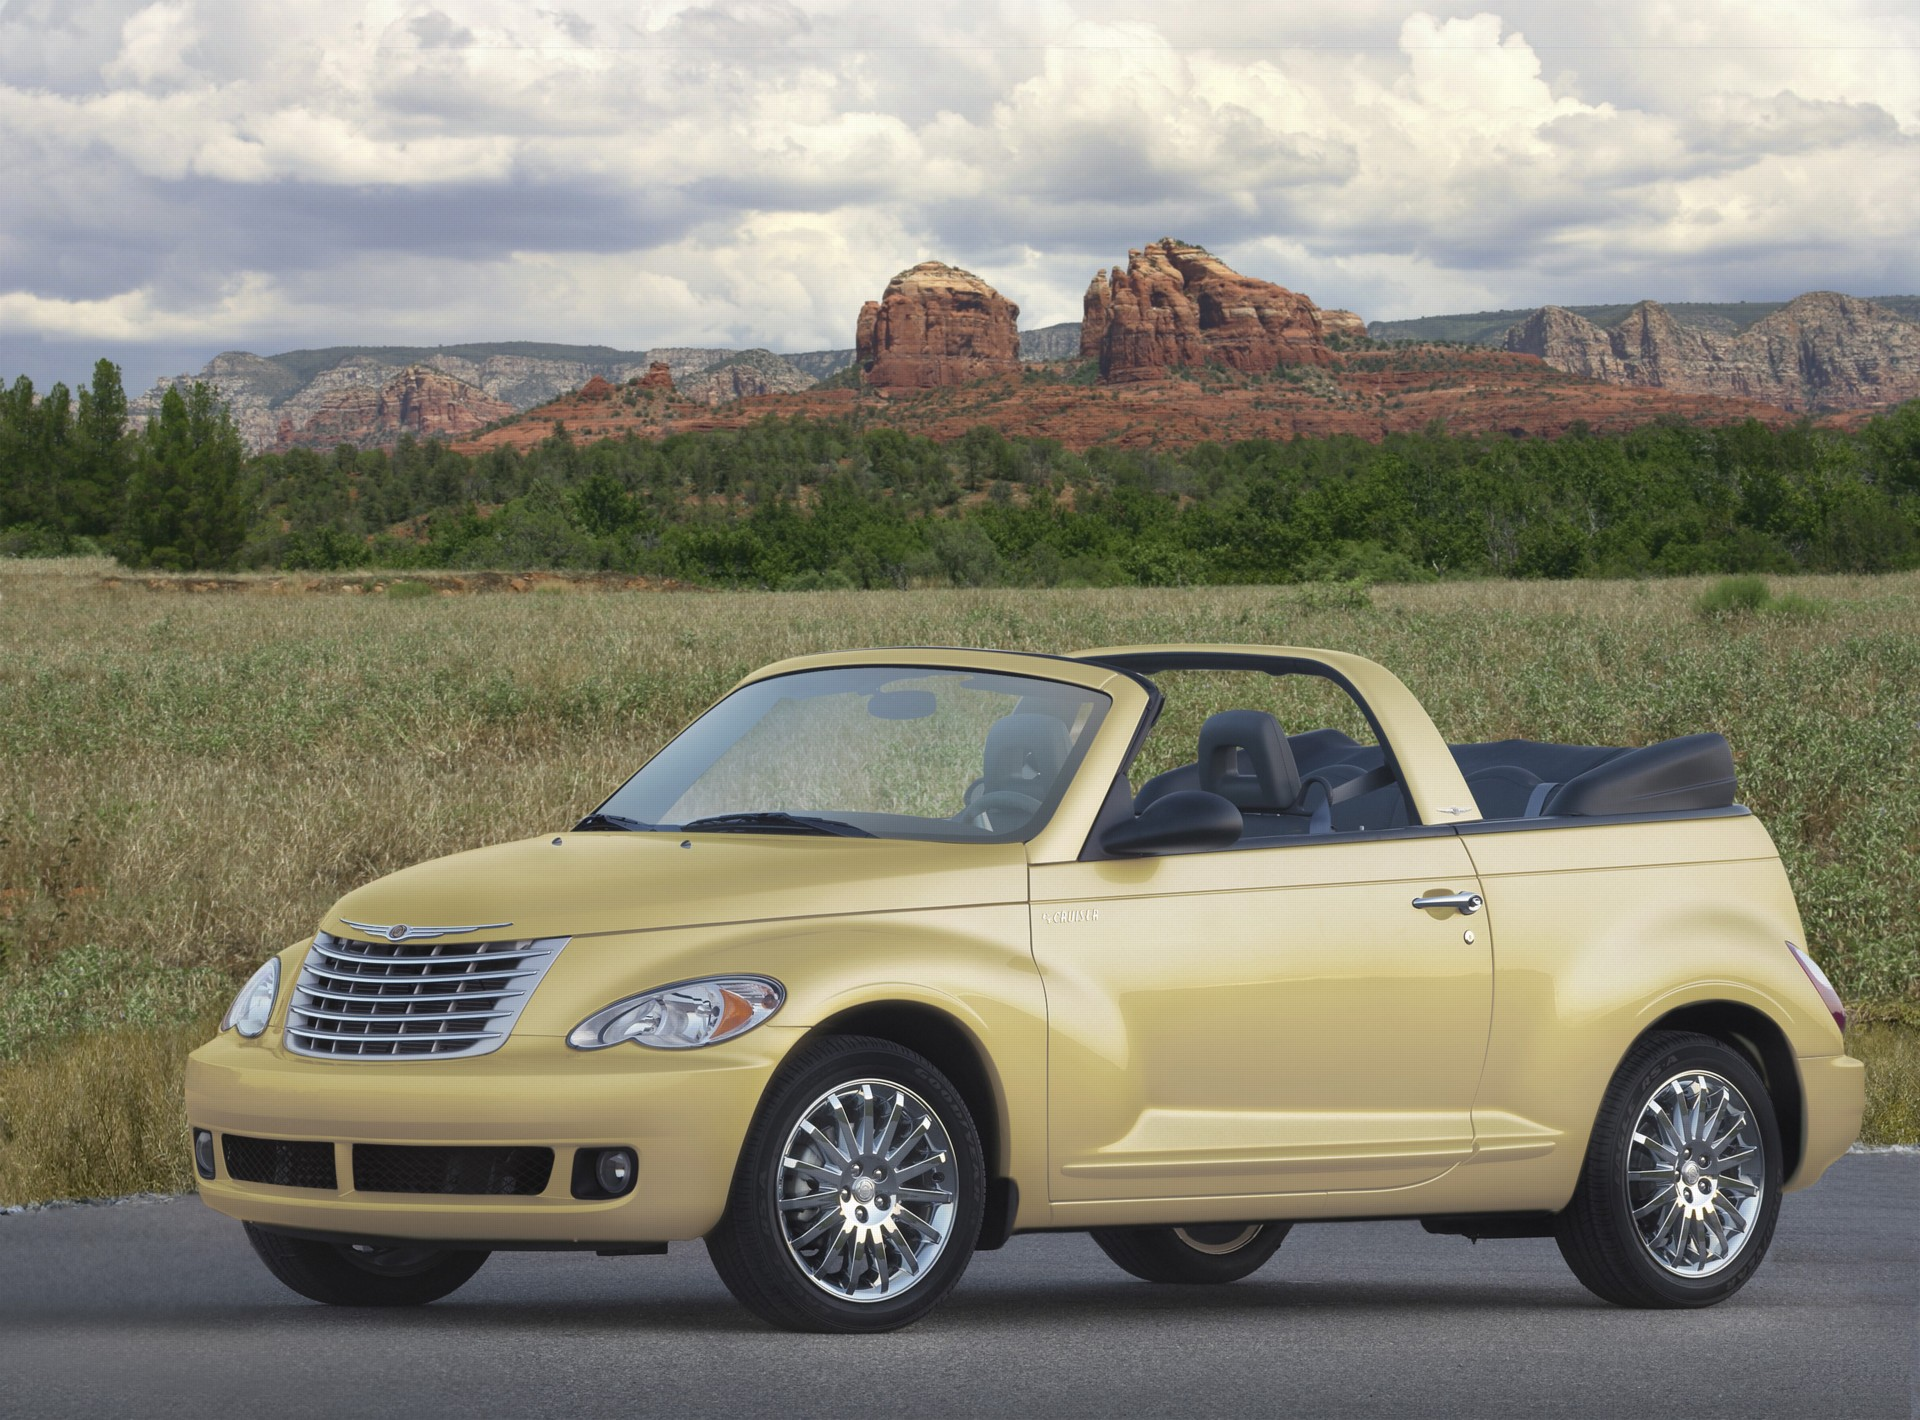 2007 chrysler pt cruiser convertible pictures history. Black Bedroom Furniture Sets. Home Design Ideas